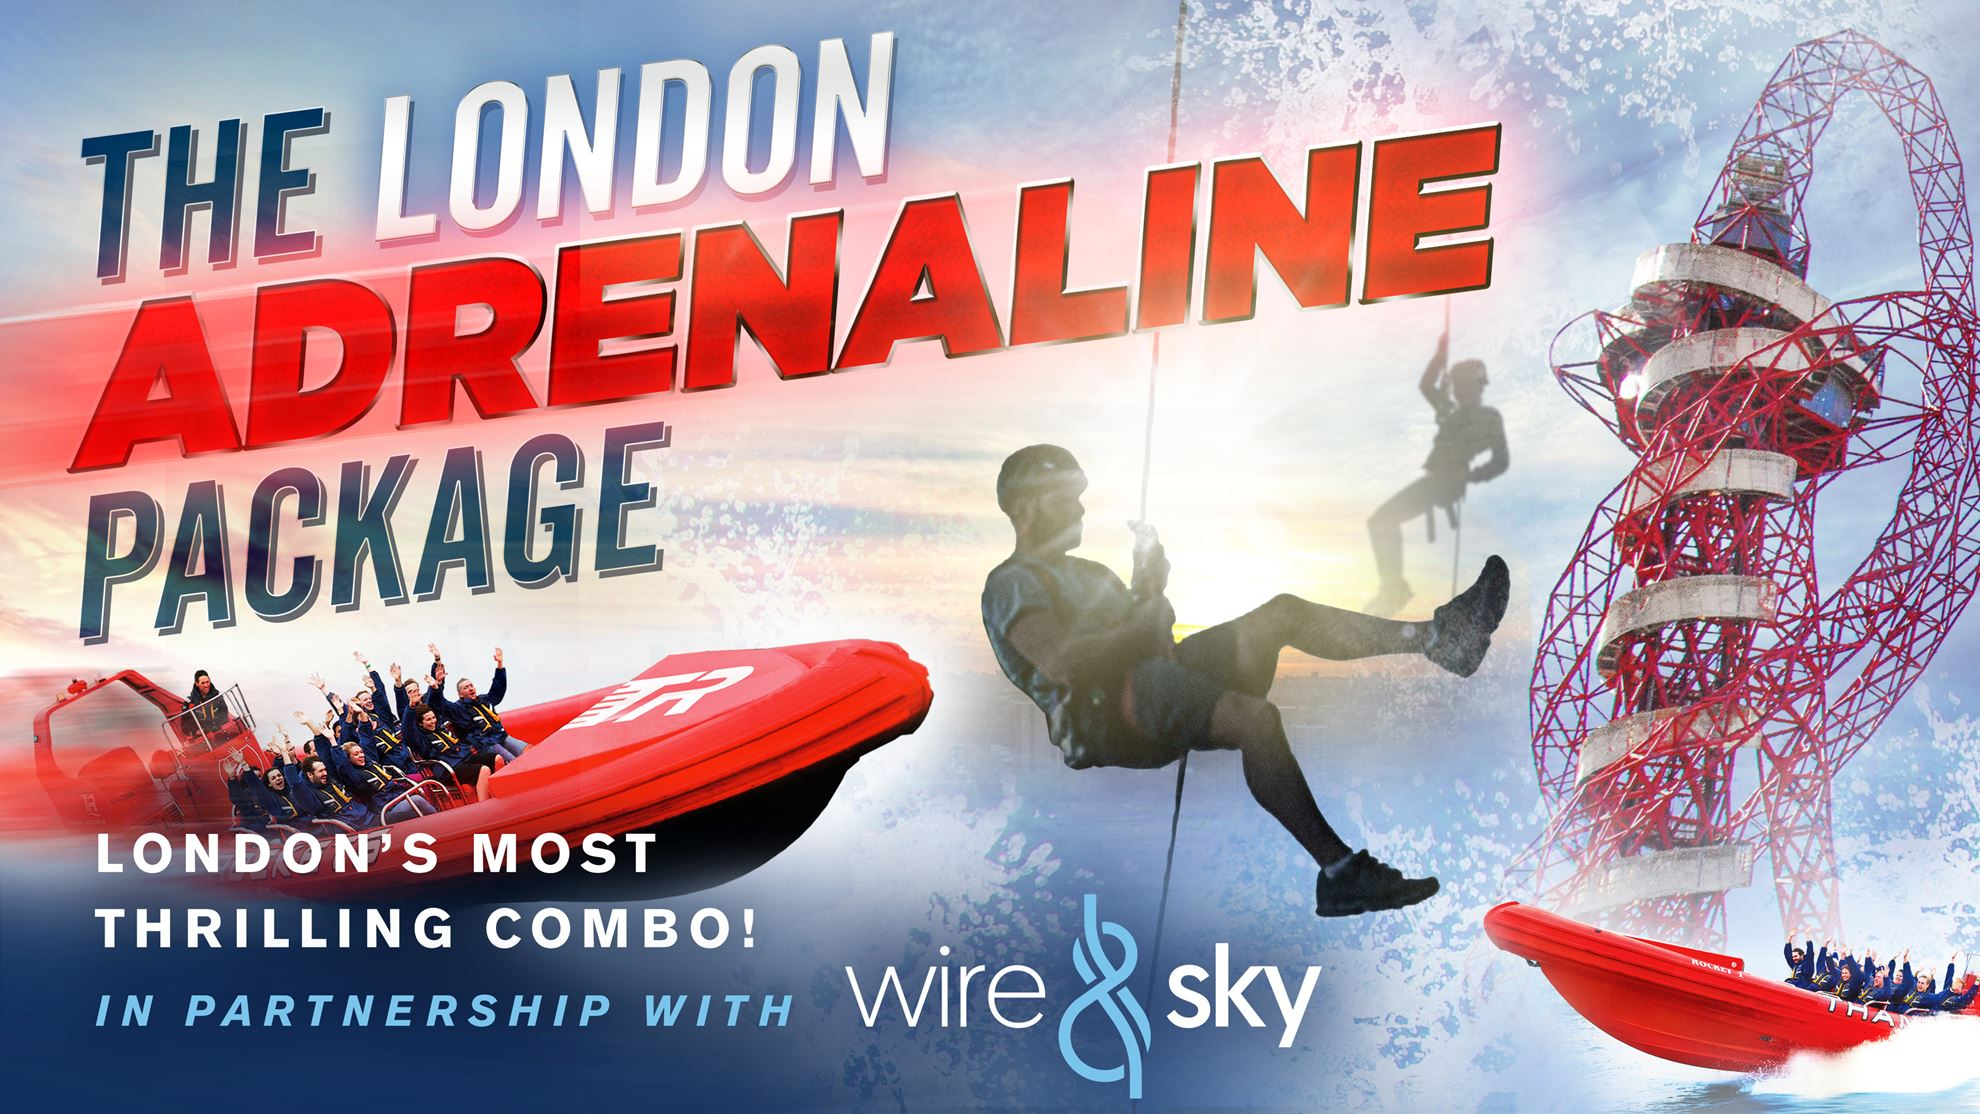 London Adrenaline Experiences